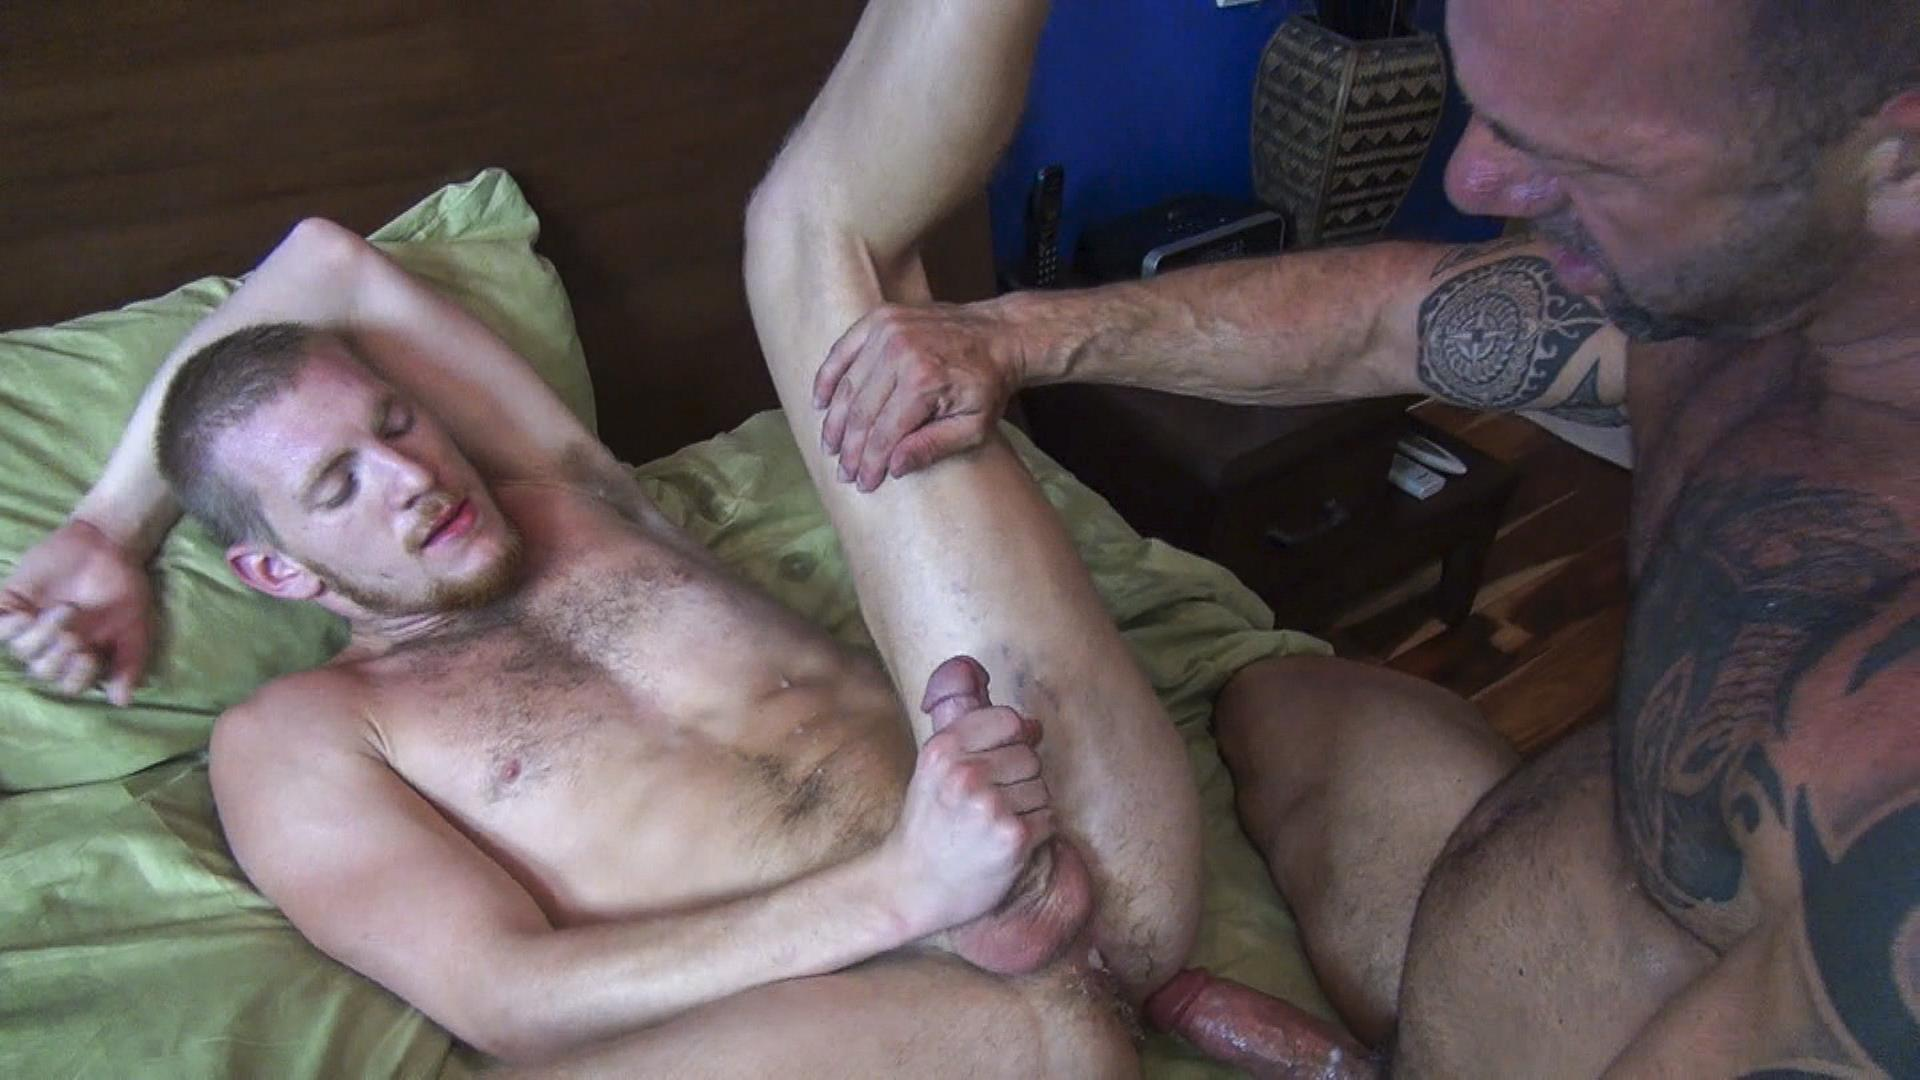 Raw Fuck Club Vic Rocco and Rikk York and Billy Warren and Job Galt Bareback Daddy Amateur Gay Porn 01 Four Hairy Muscle Daddies In A Bareback Fuck Fest Orgy